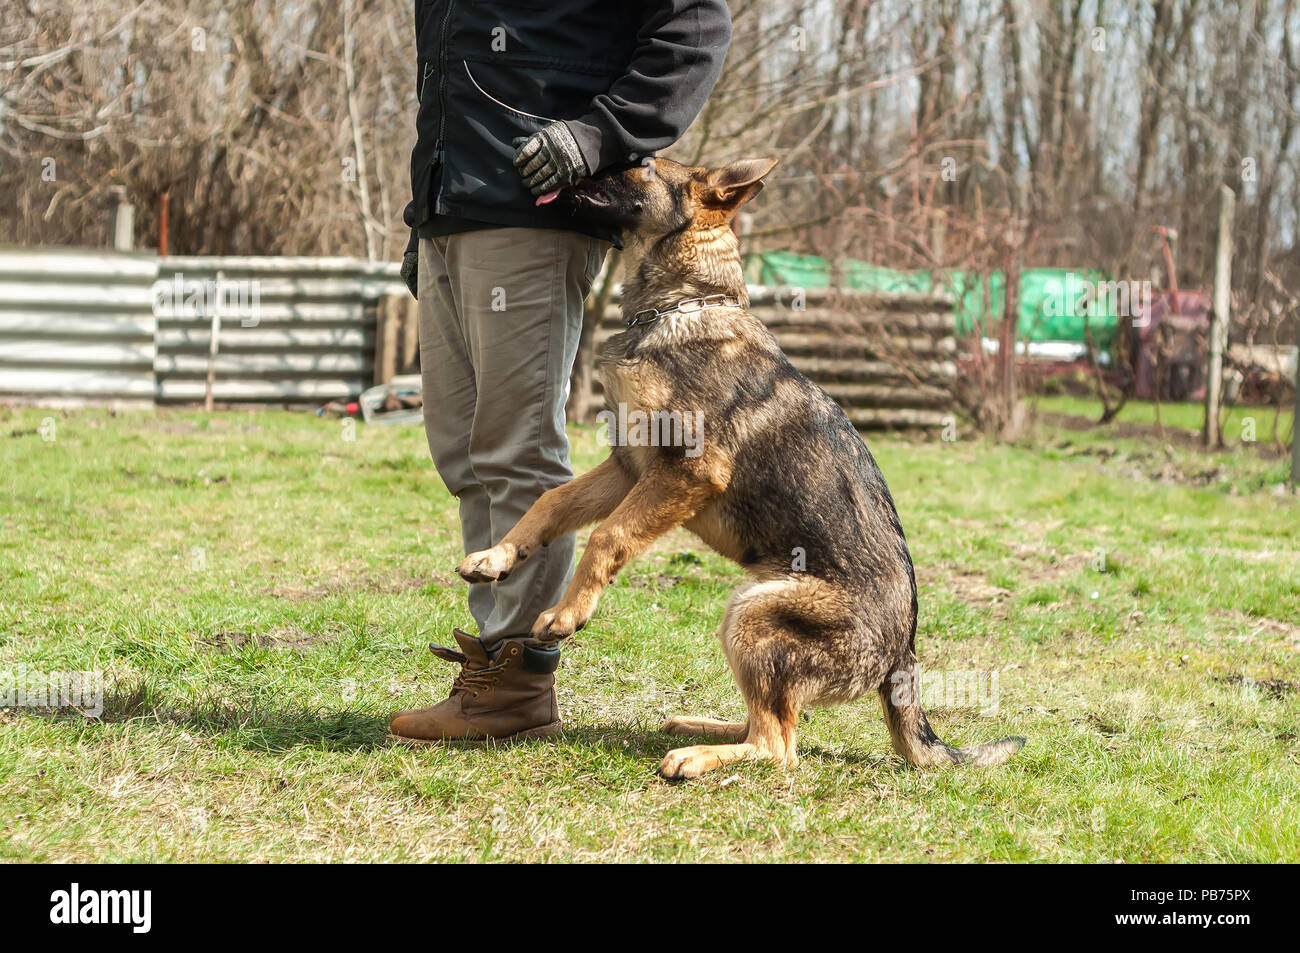 A german shepherd puppy trained by a dog trainer in a green environment at a sunny springtime. - Stock Image